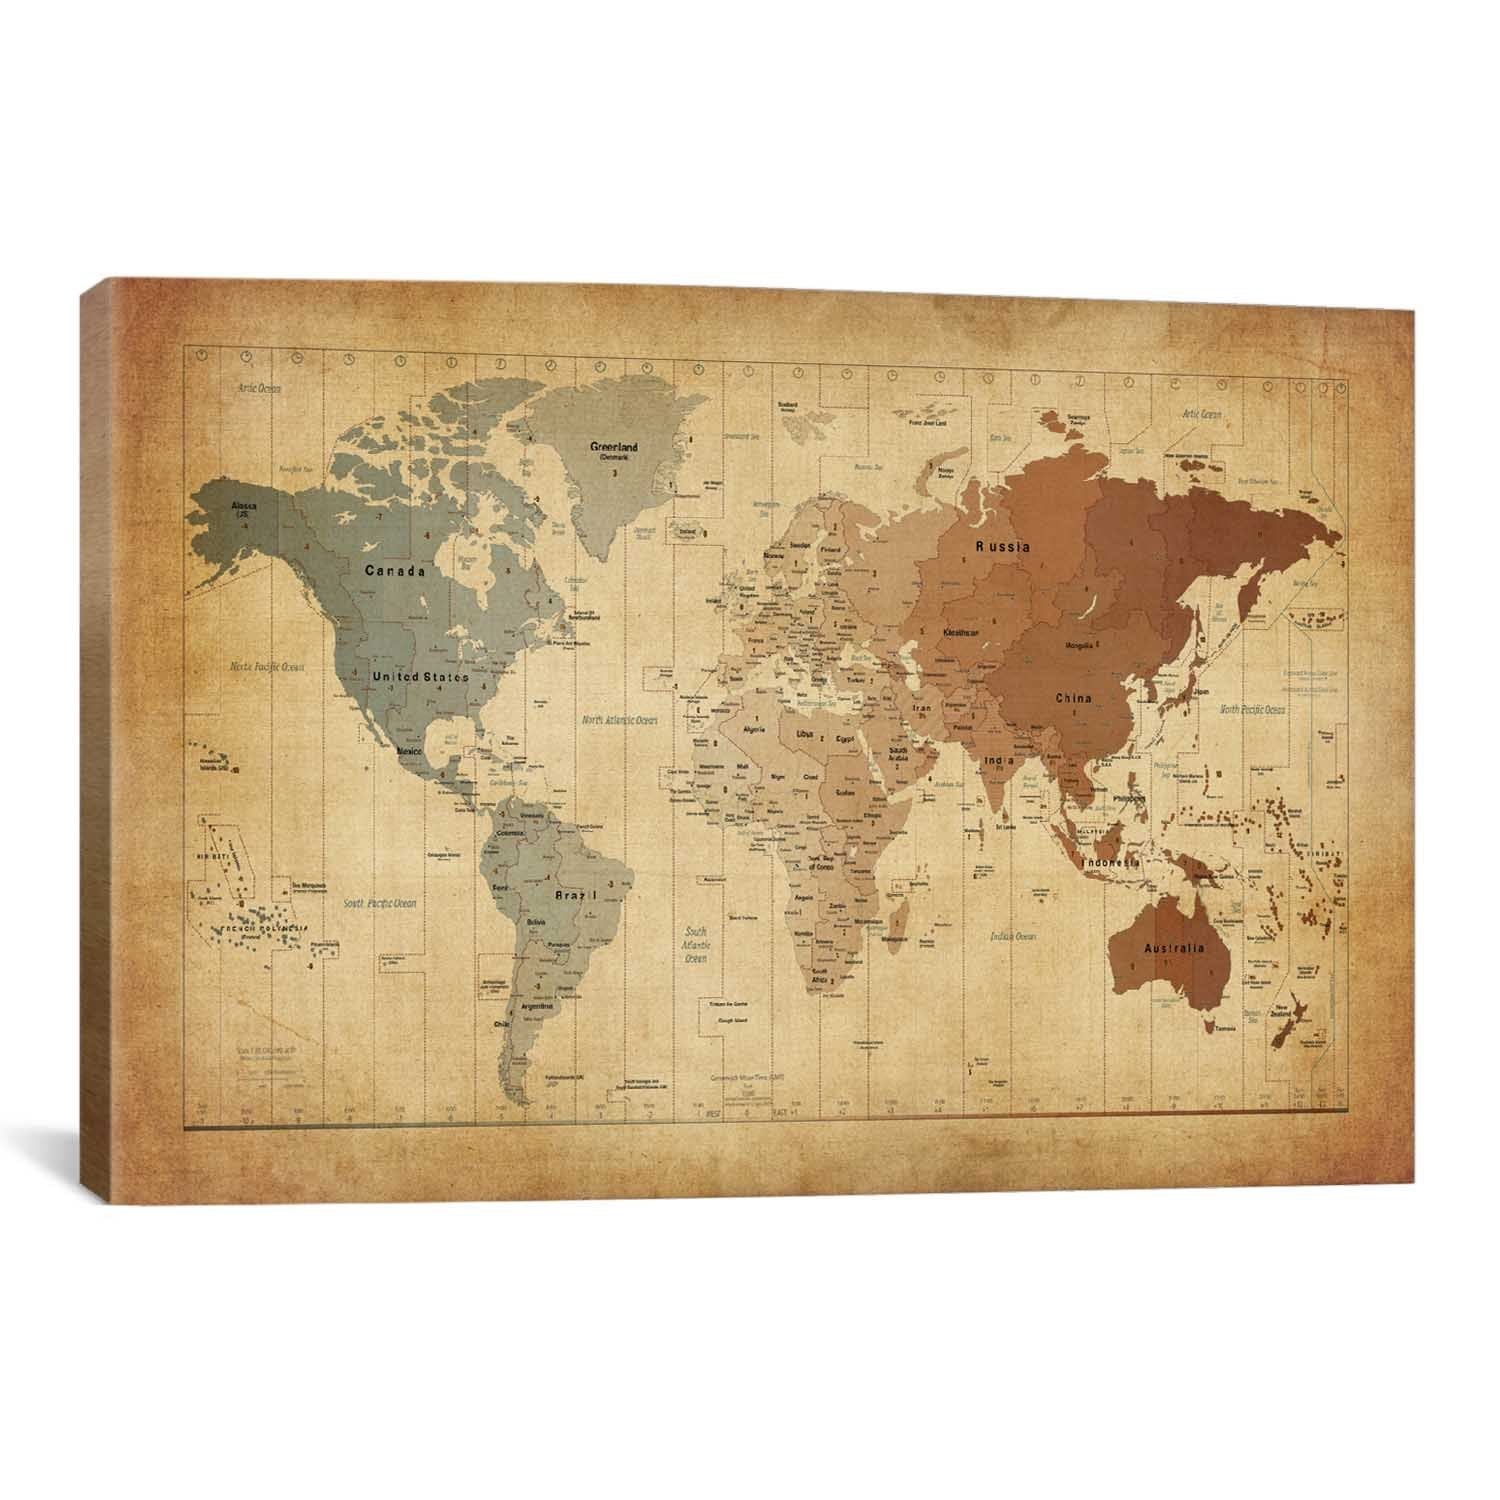 Map Art Gallery For Less   Overstock.com